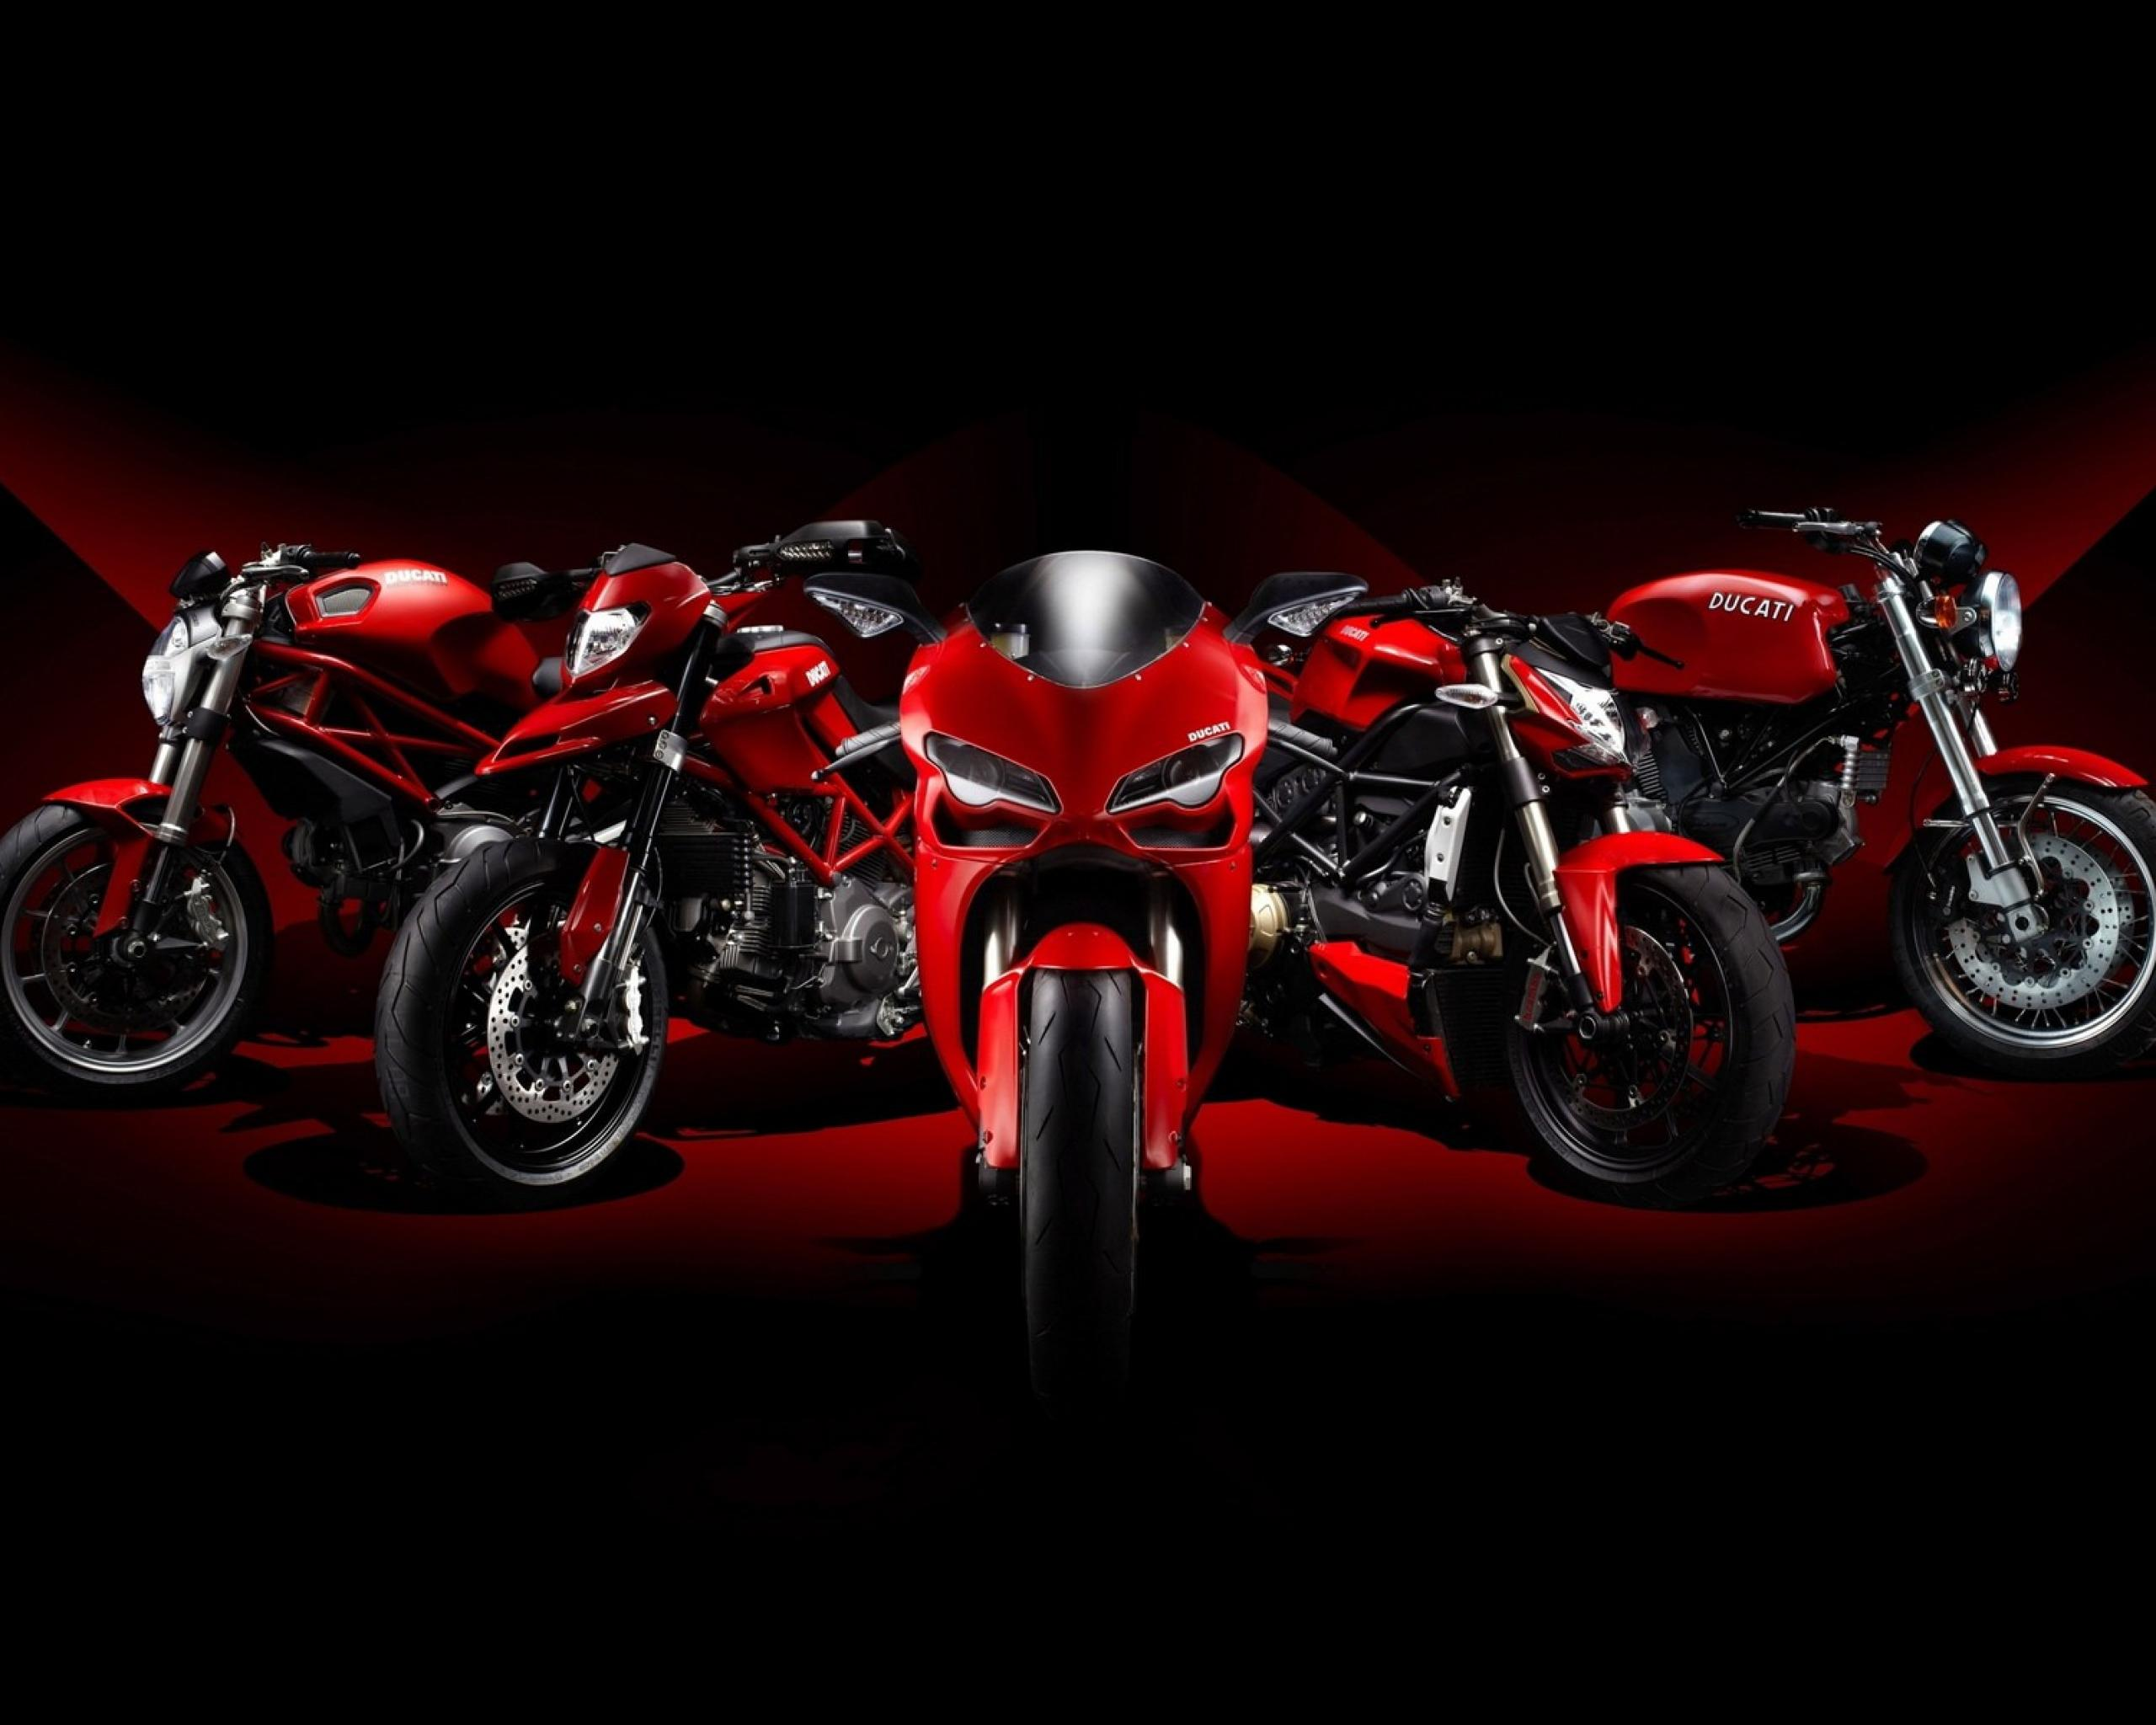 Superbike Hd Wallpaper Full Screen: 20 Fonds D'écran Et Wallpapers De Moto